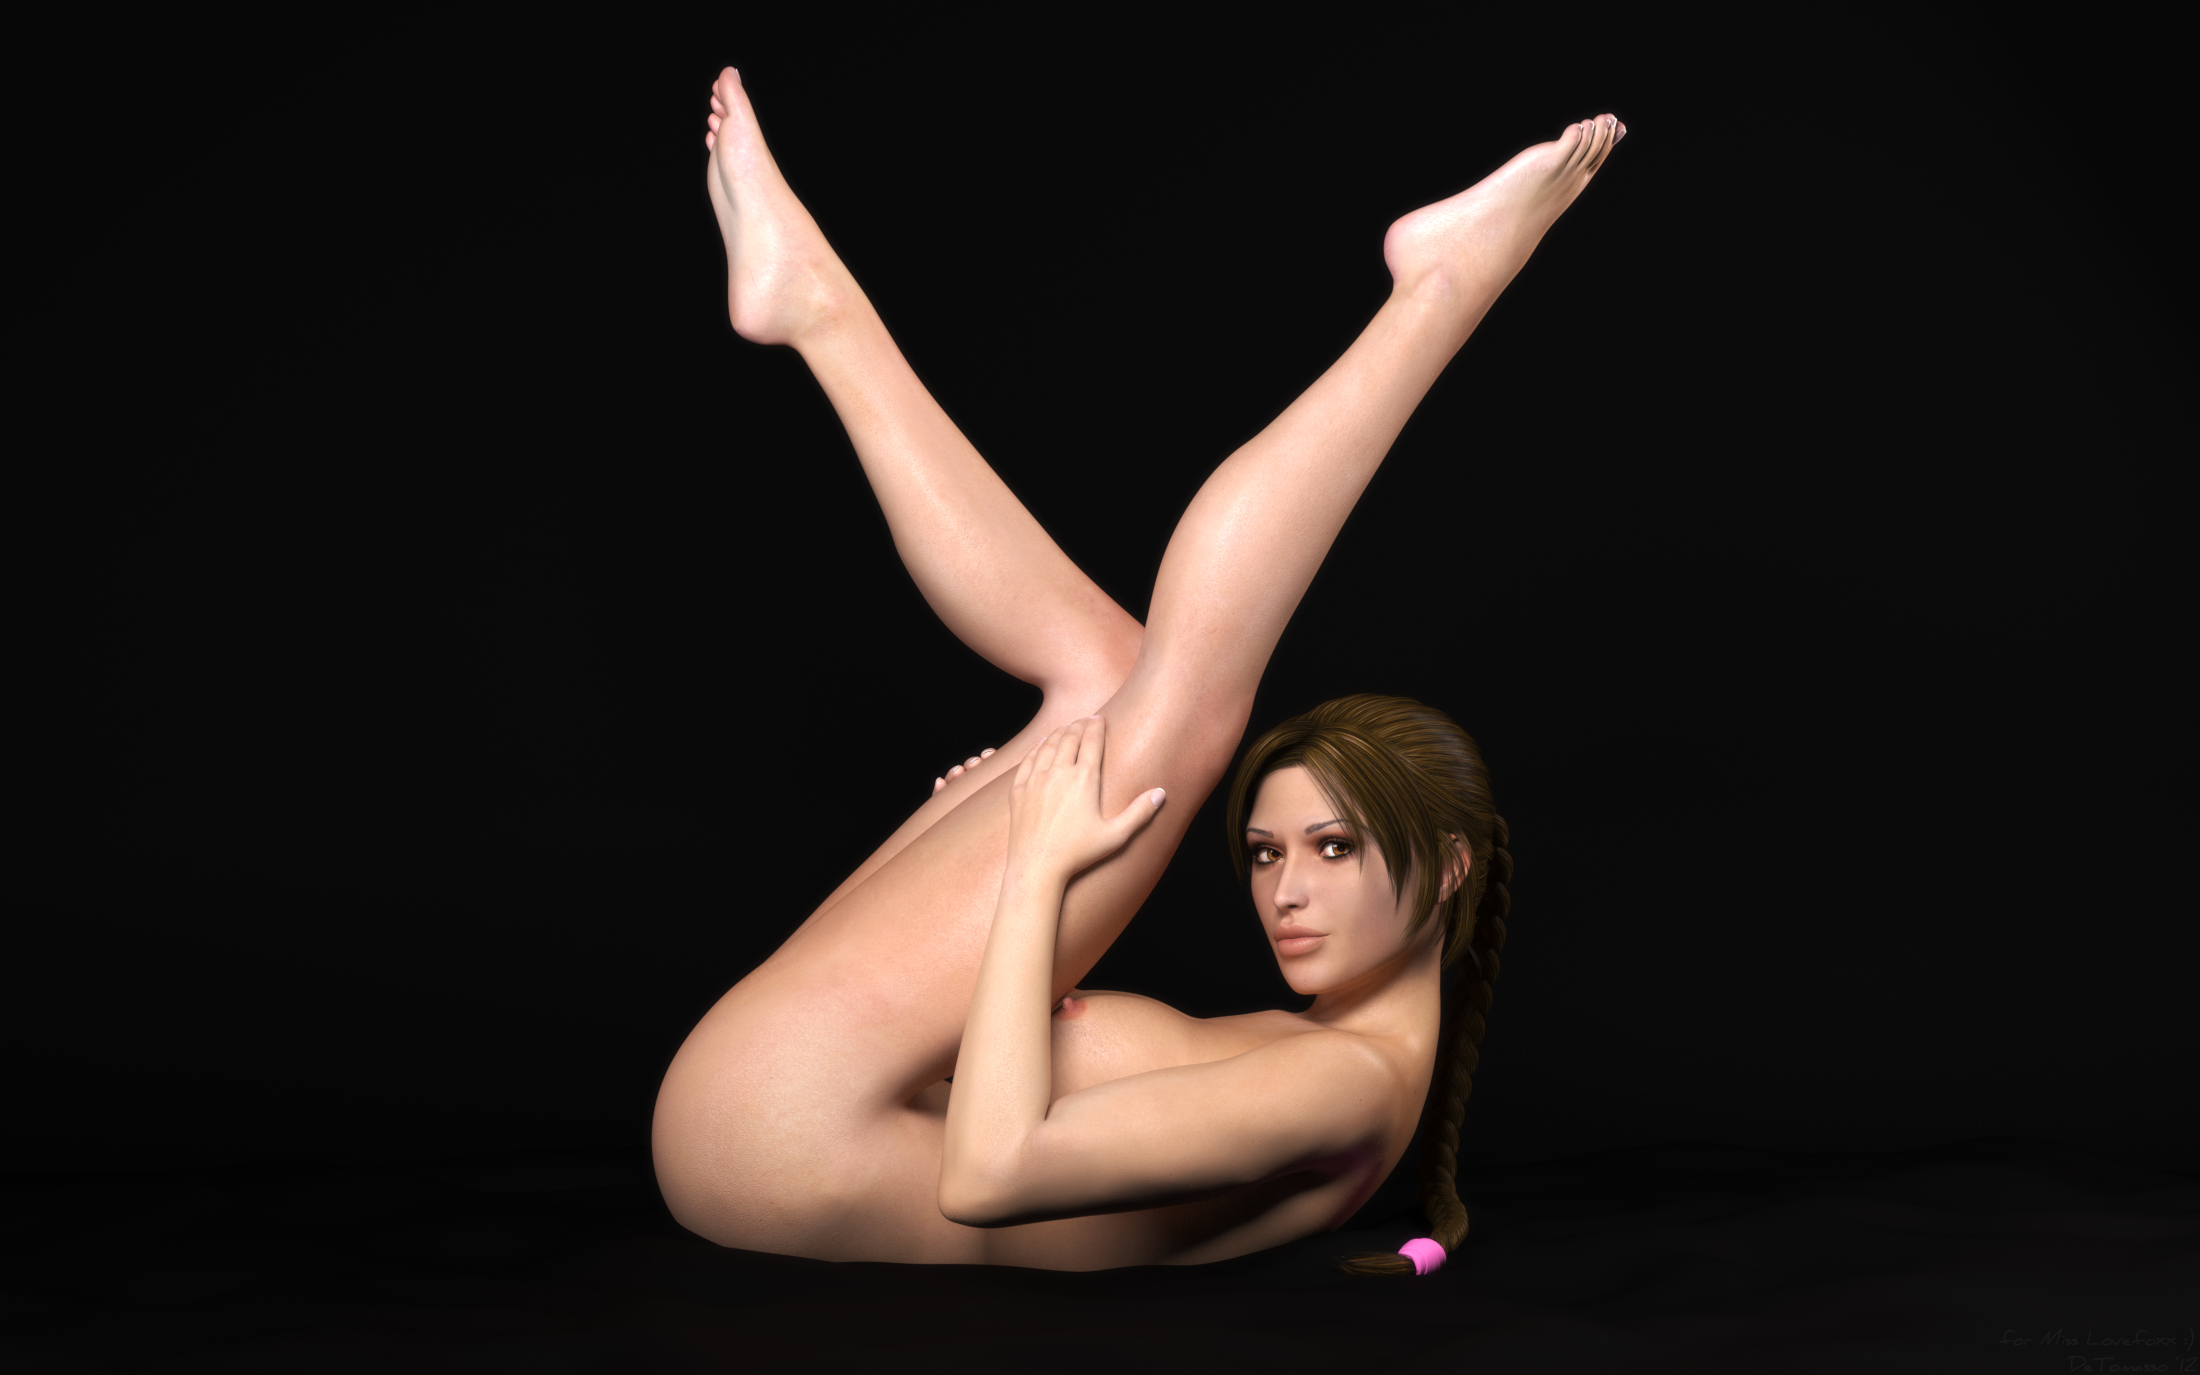 Ut 3 nude mode porn streaming